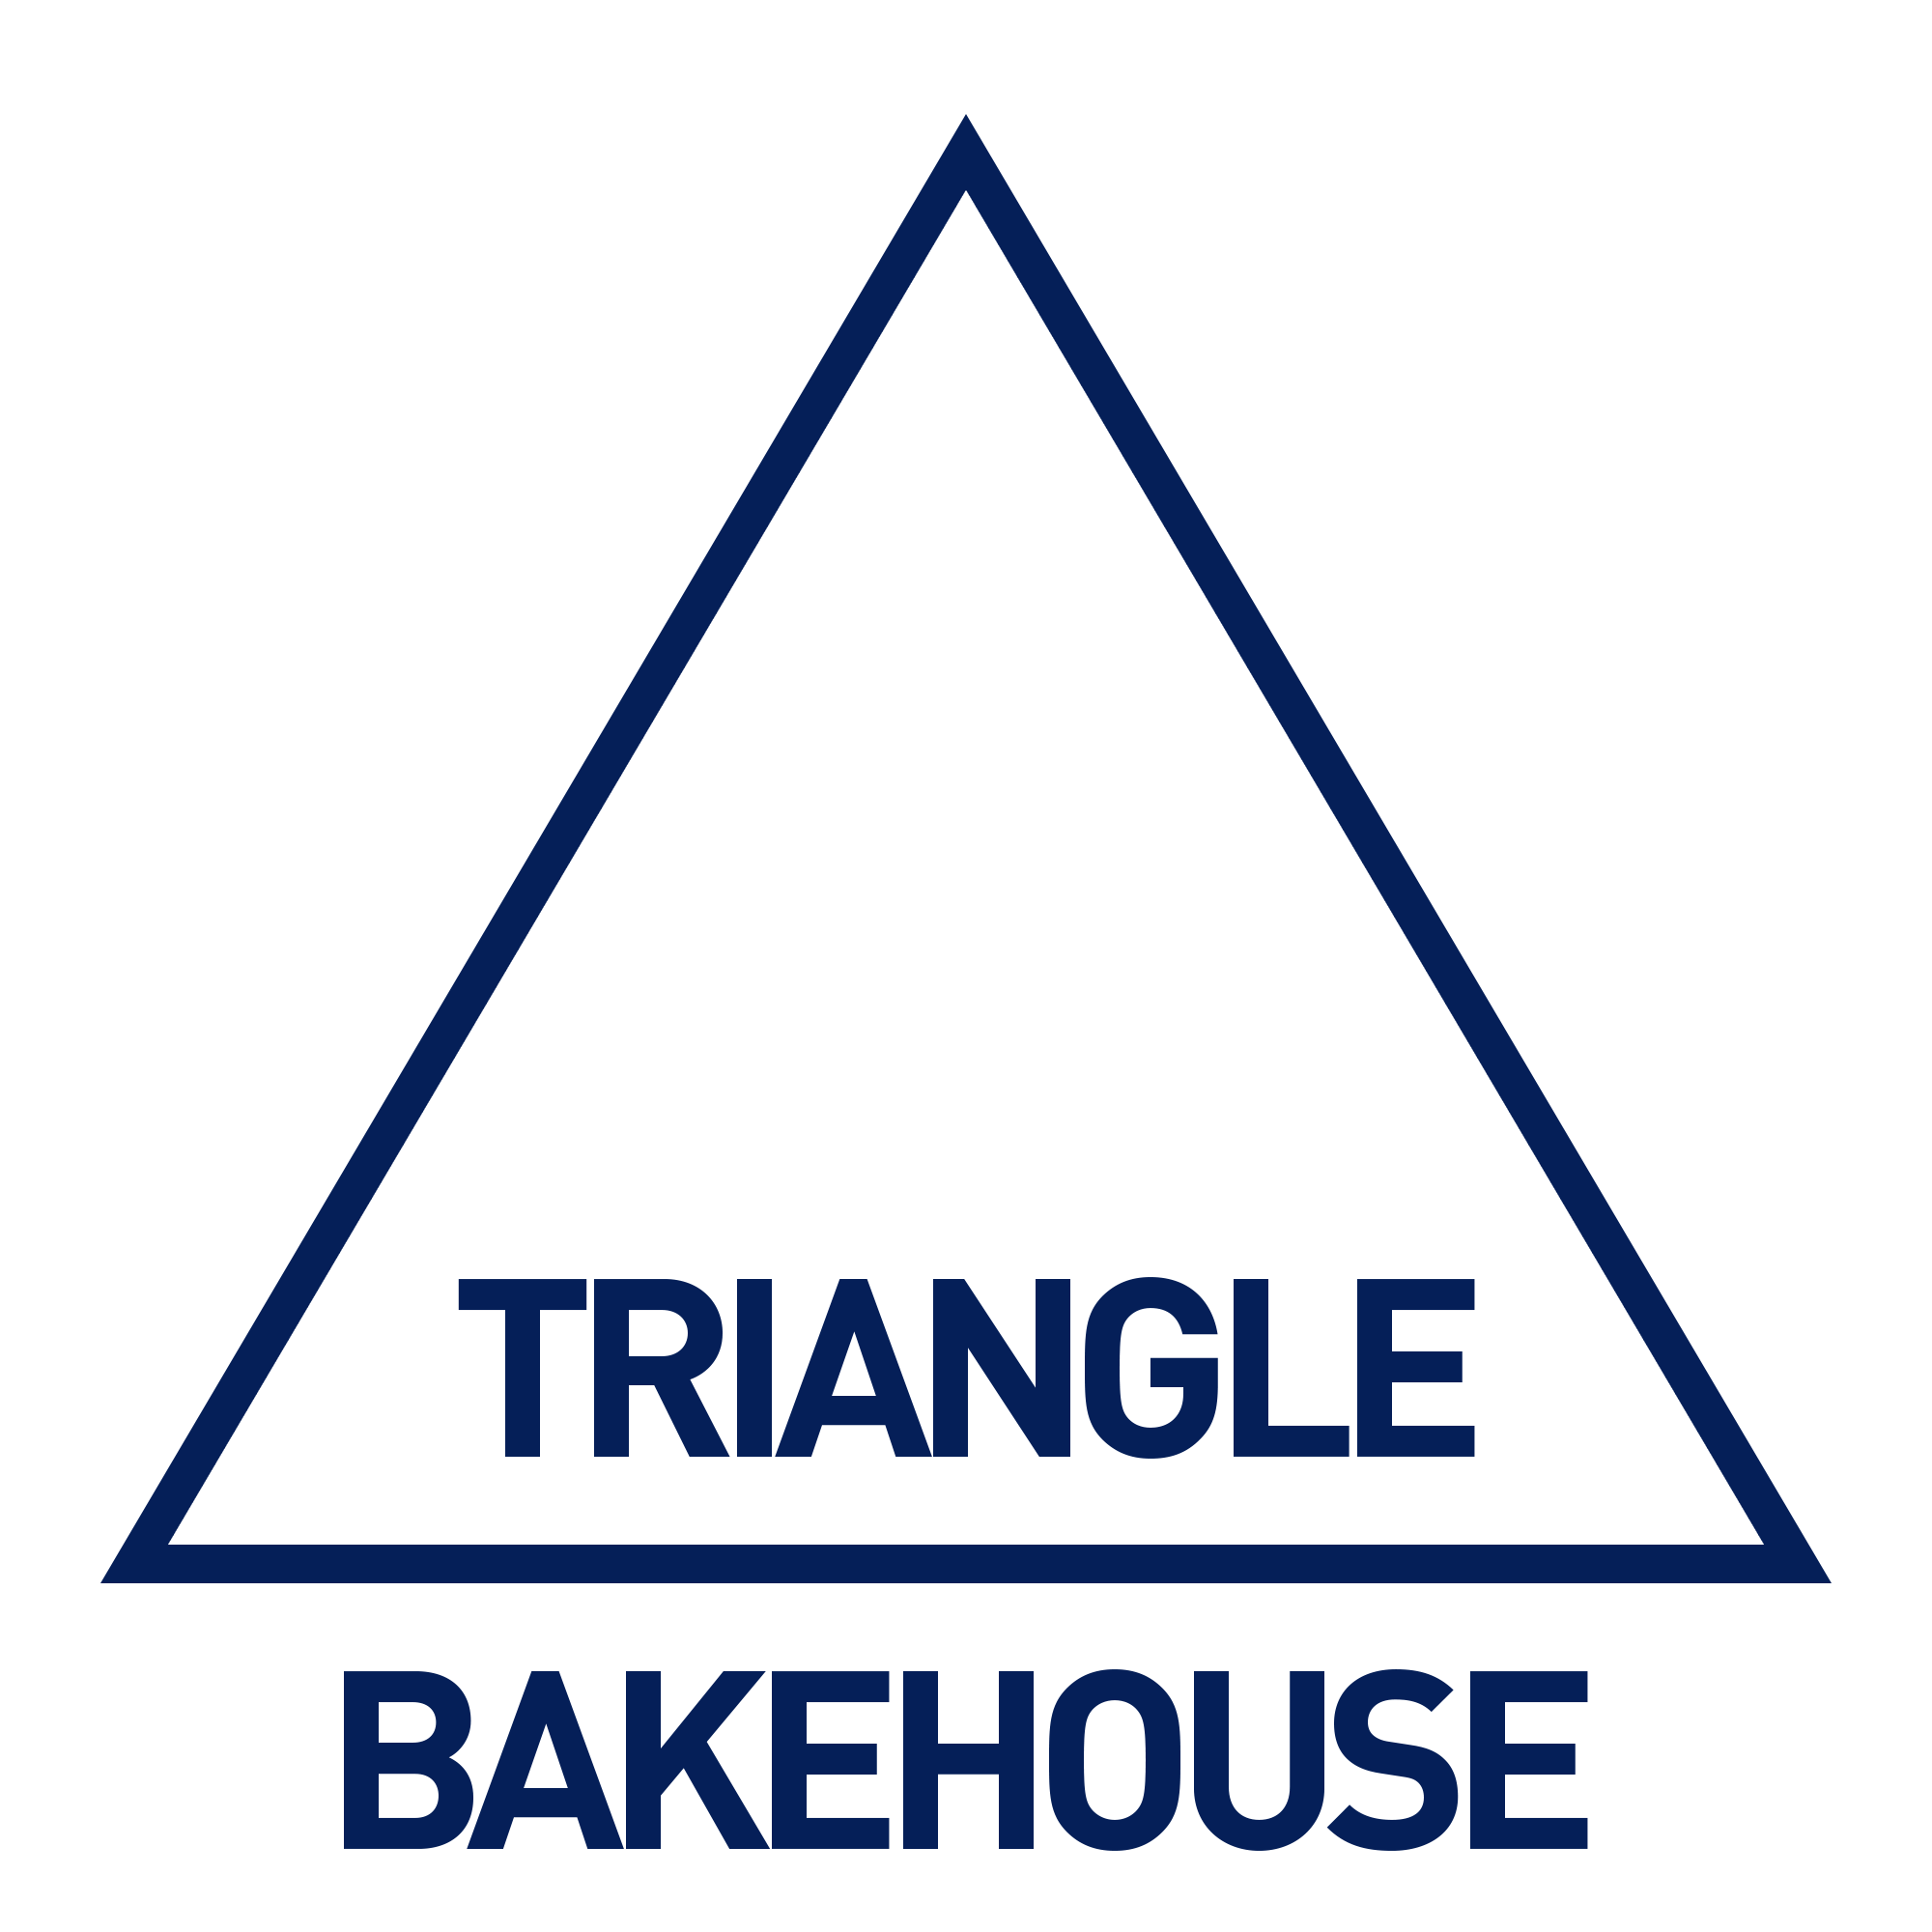 Triangle Bakehouse